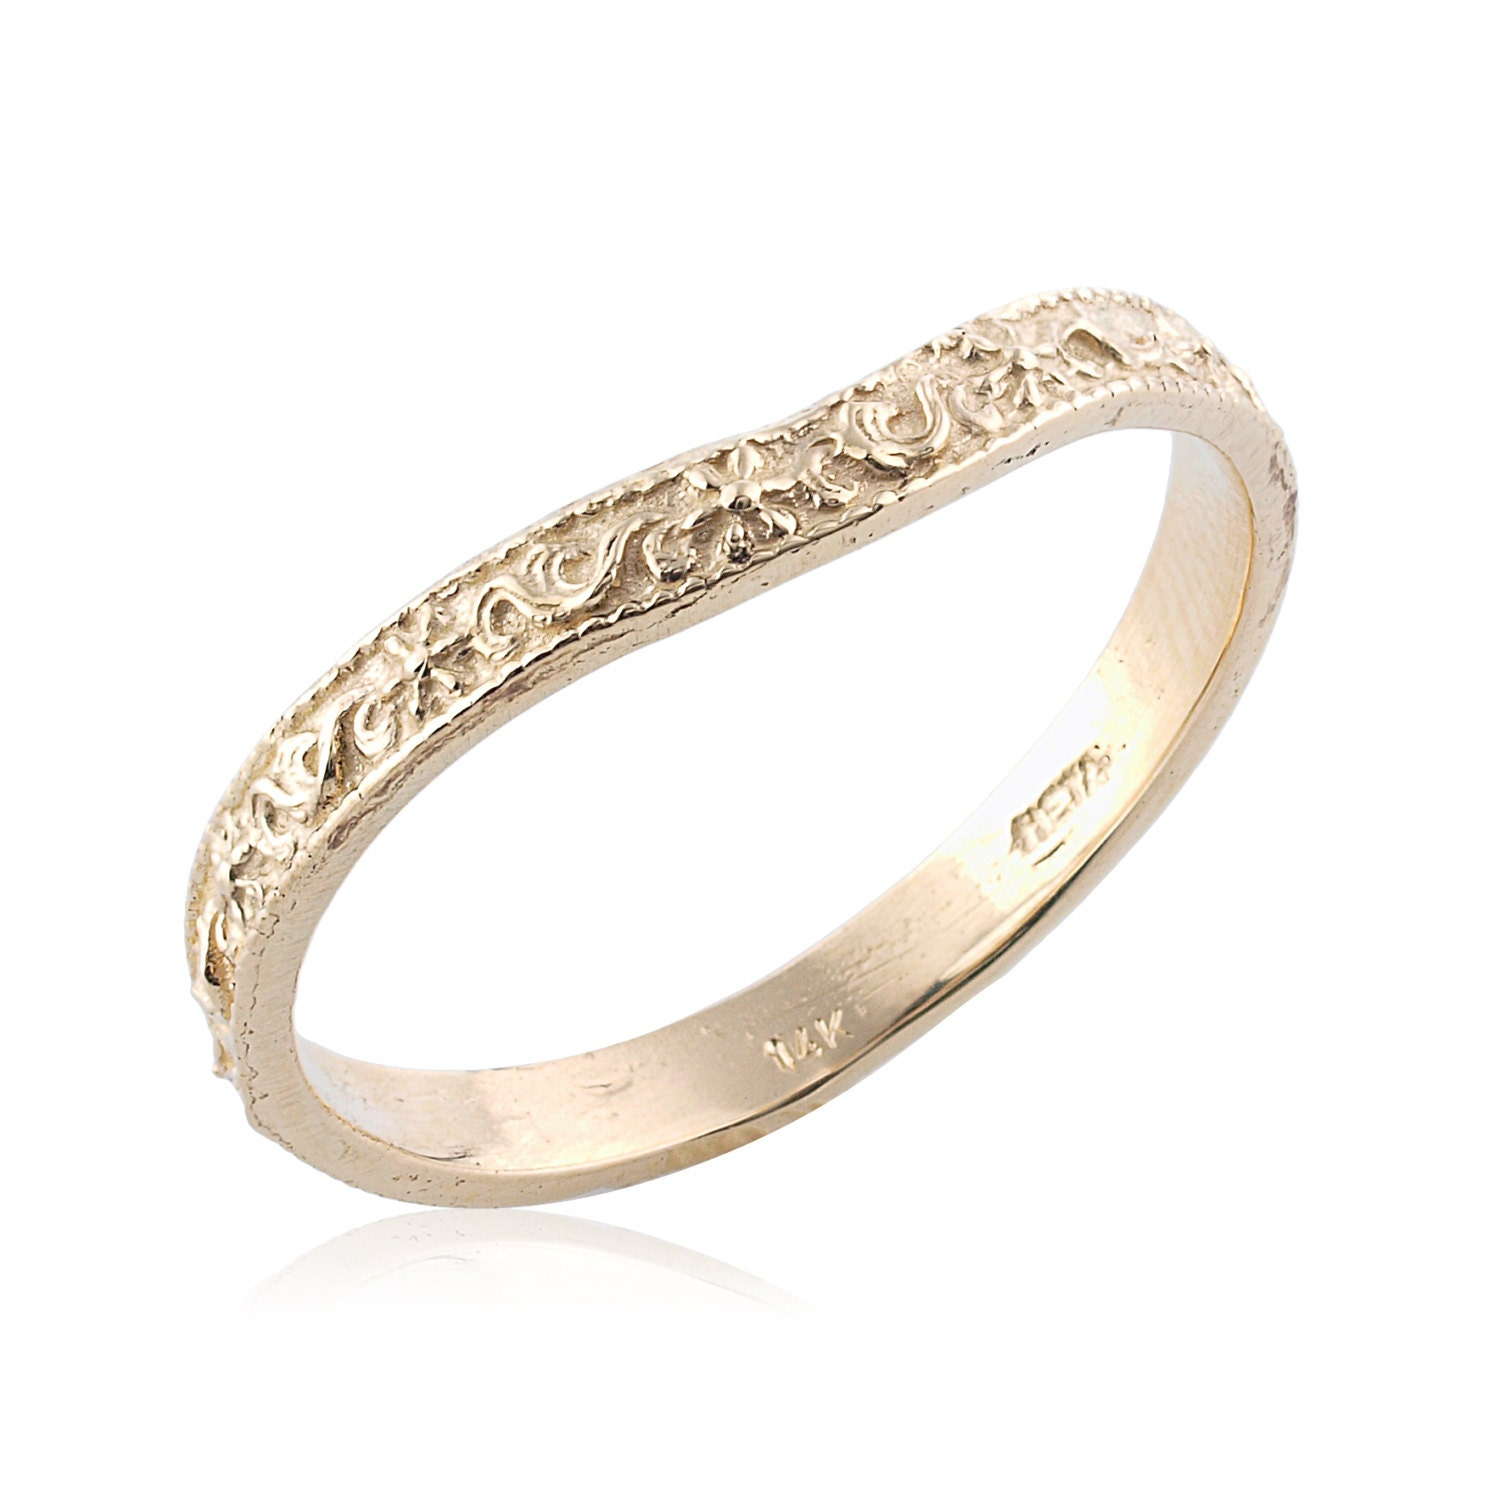 Curved Wedding Bands: Curved Art Deco Engraved 14K Gold Wedding Band Vintage